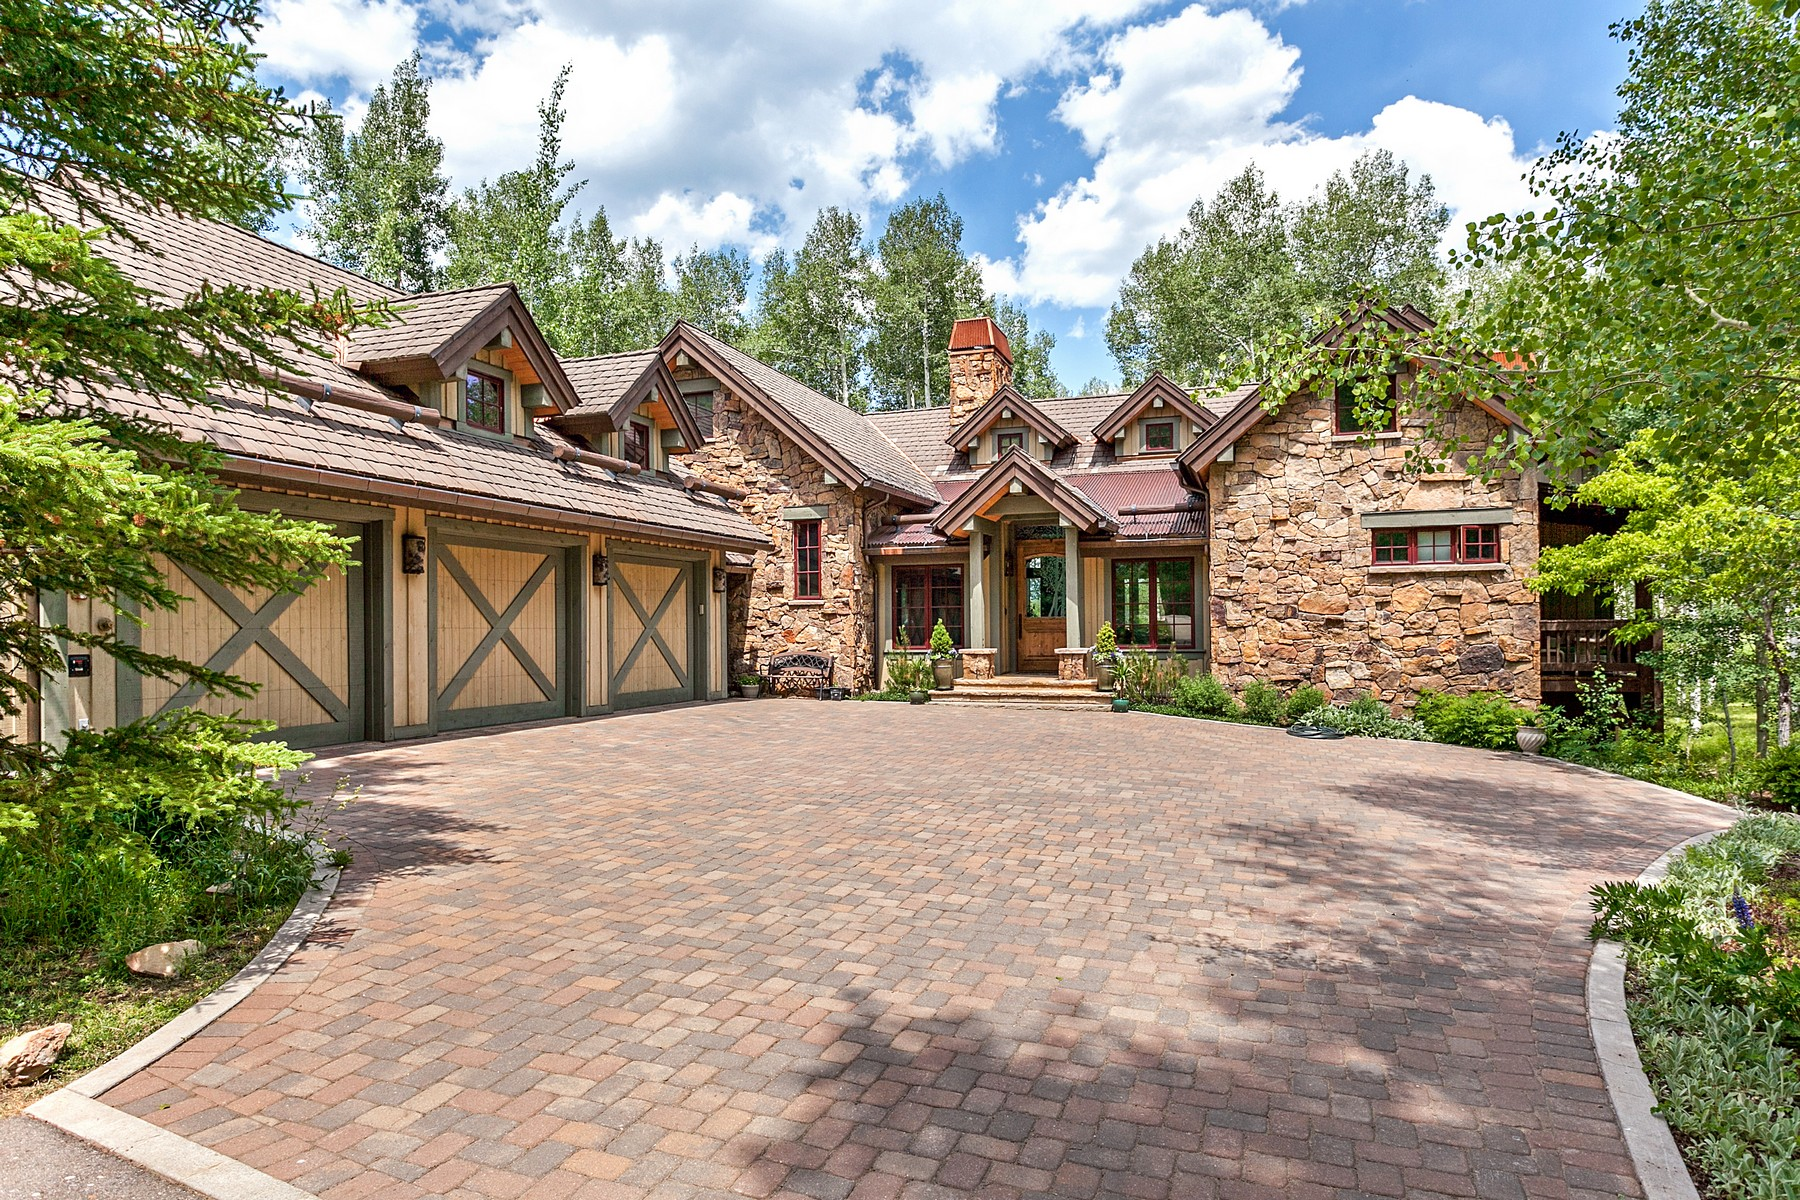 Single Family Home for Active at Custom Cordillera Home with Gore Range Views 525 Forest Trail Edwards, Colorado 81632 United States